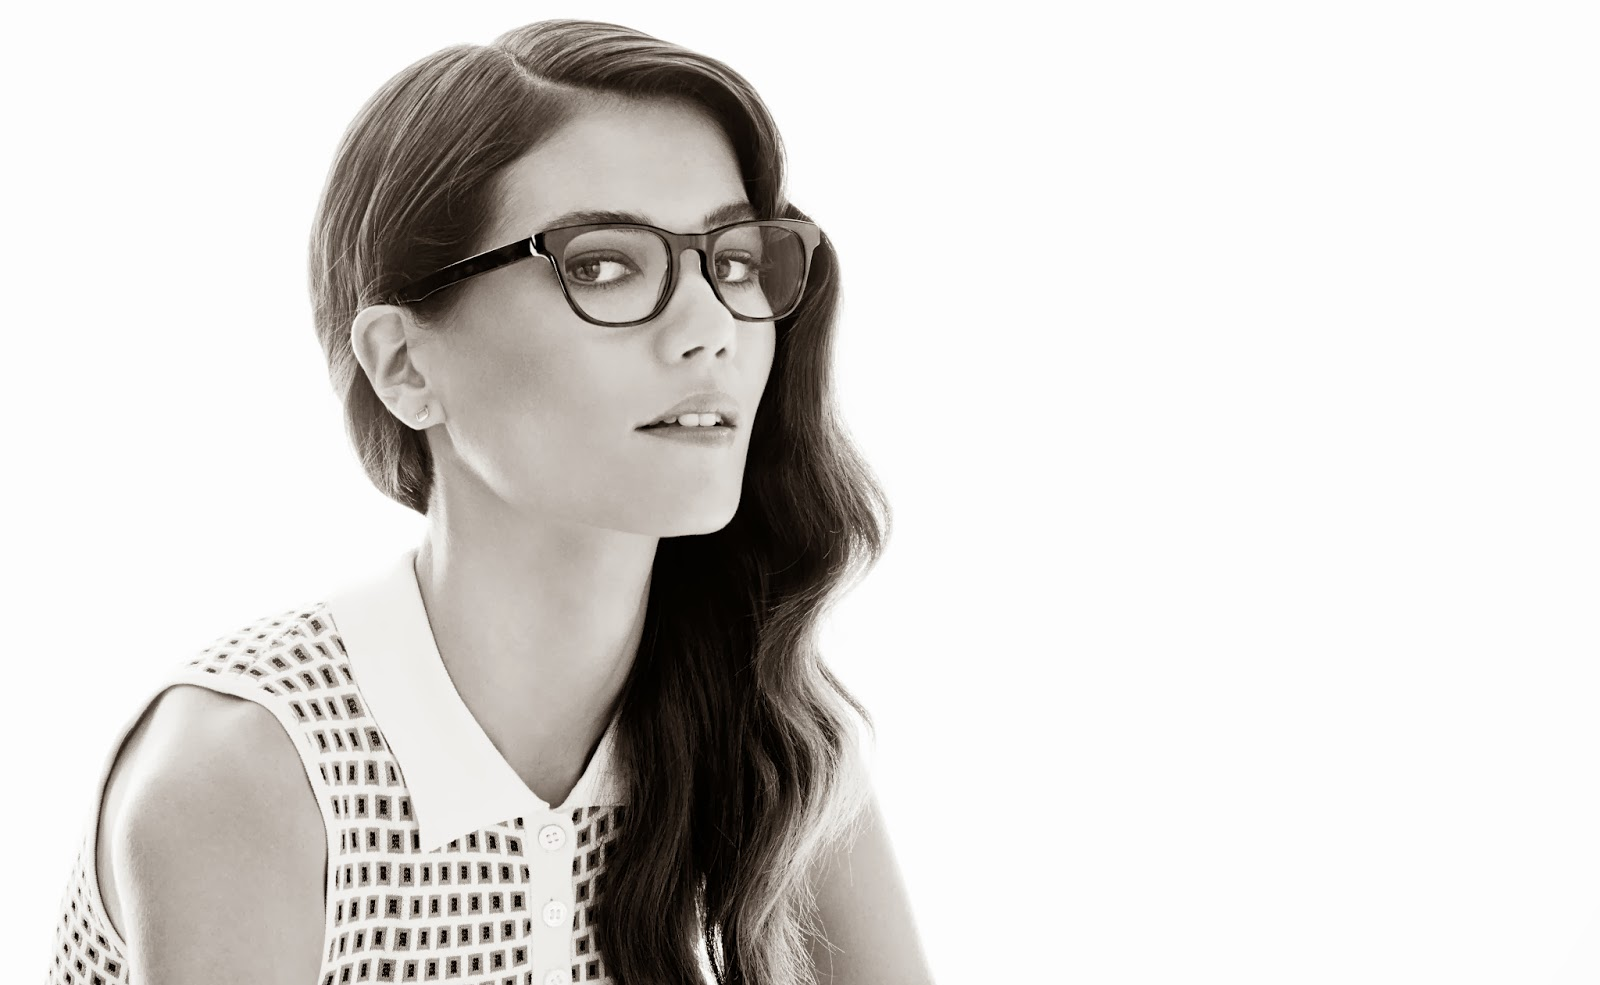 http://www.warbyparker.com/eyeglasses/women/preston#red-canyon